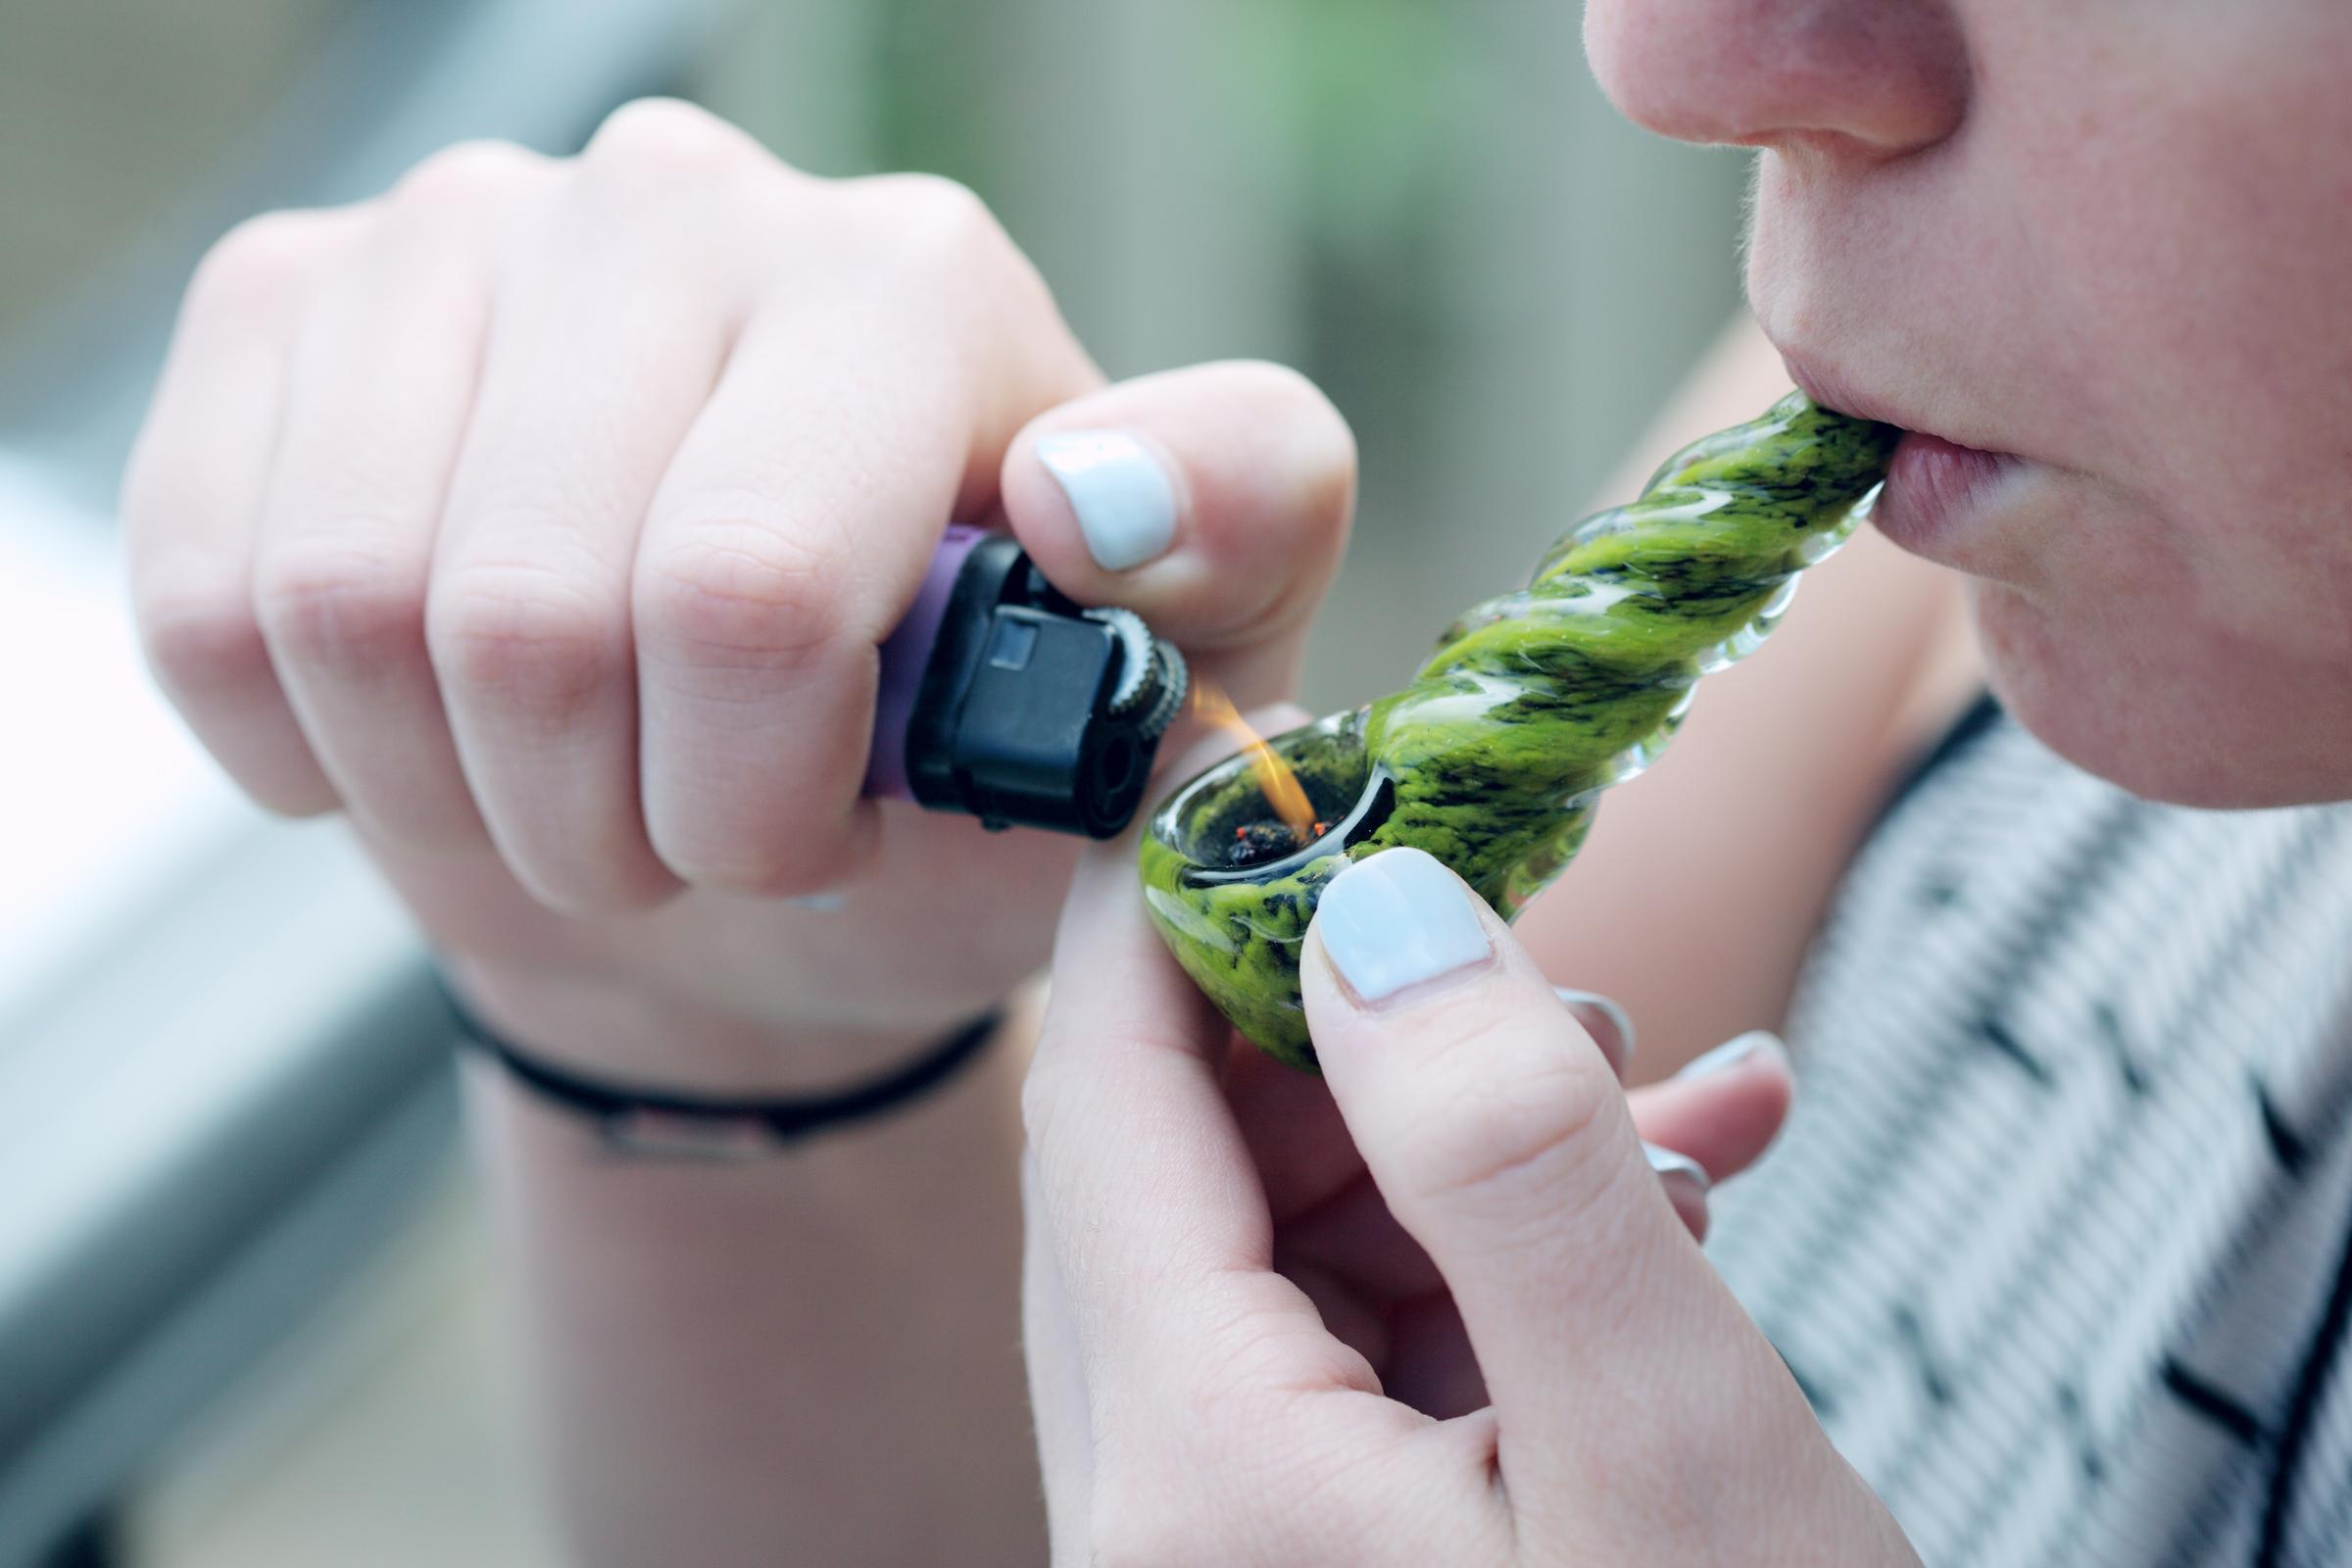 recreational marijuana is legal today in michigan here are 5 things